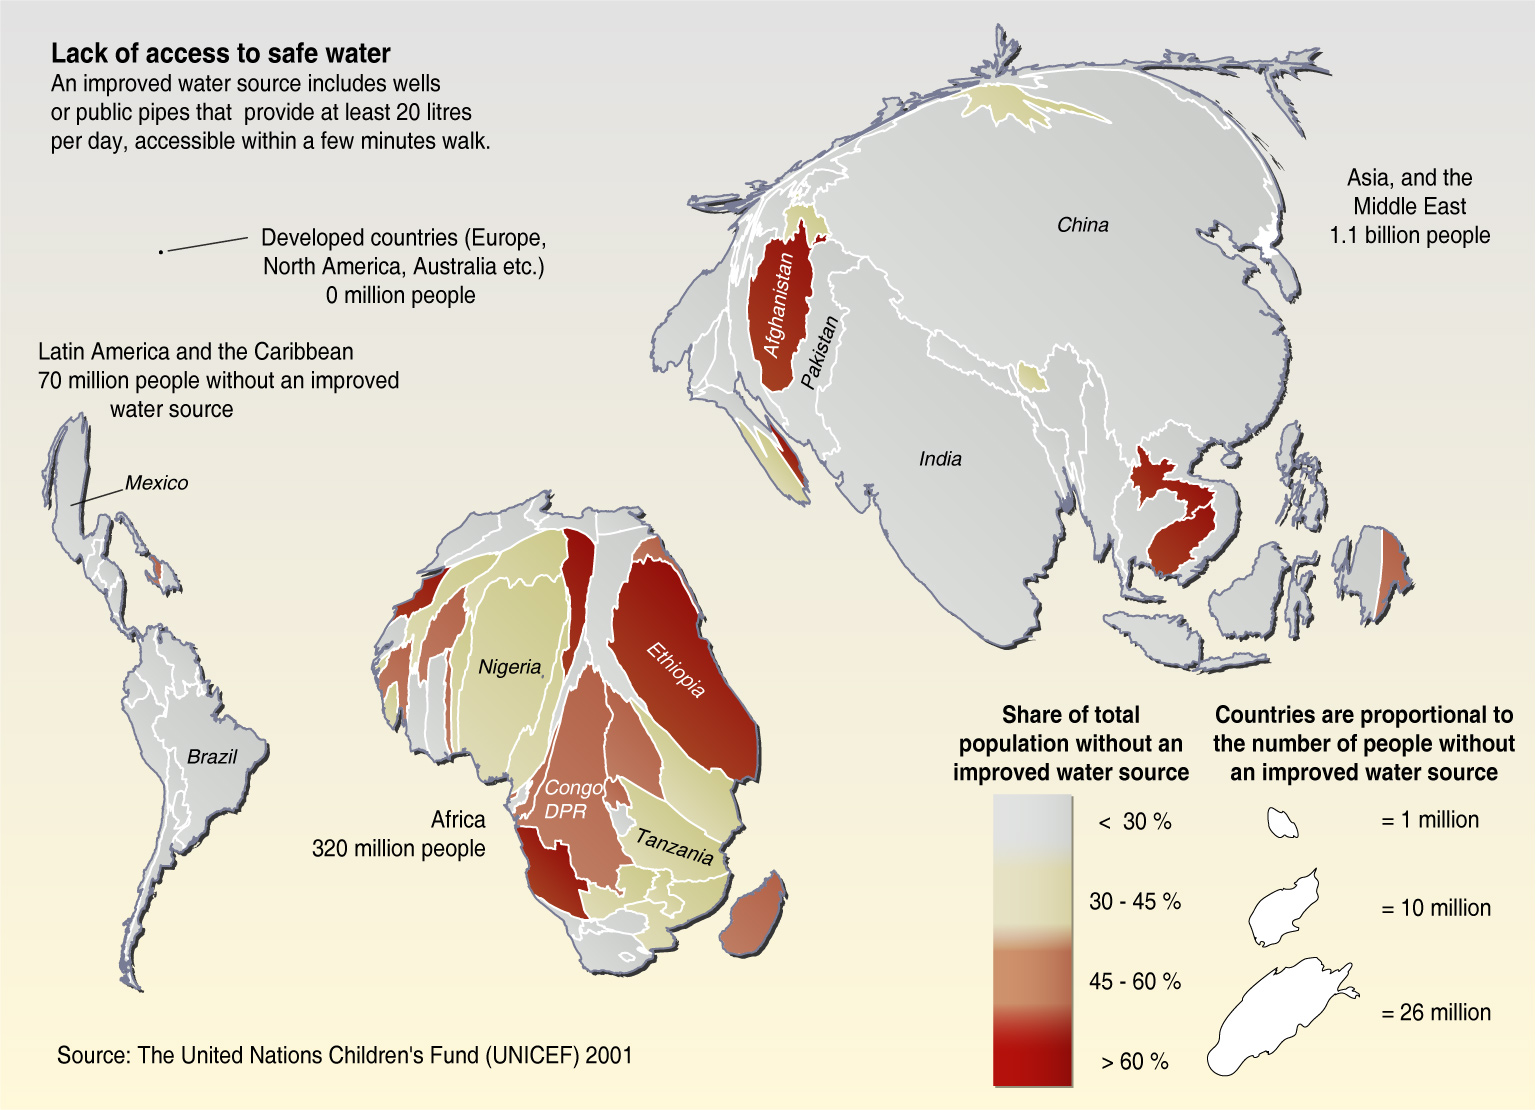 Lack of Access to Safe Water Infographic